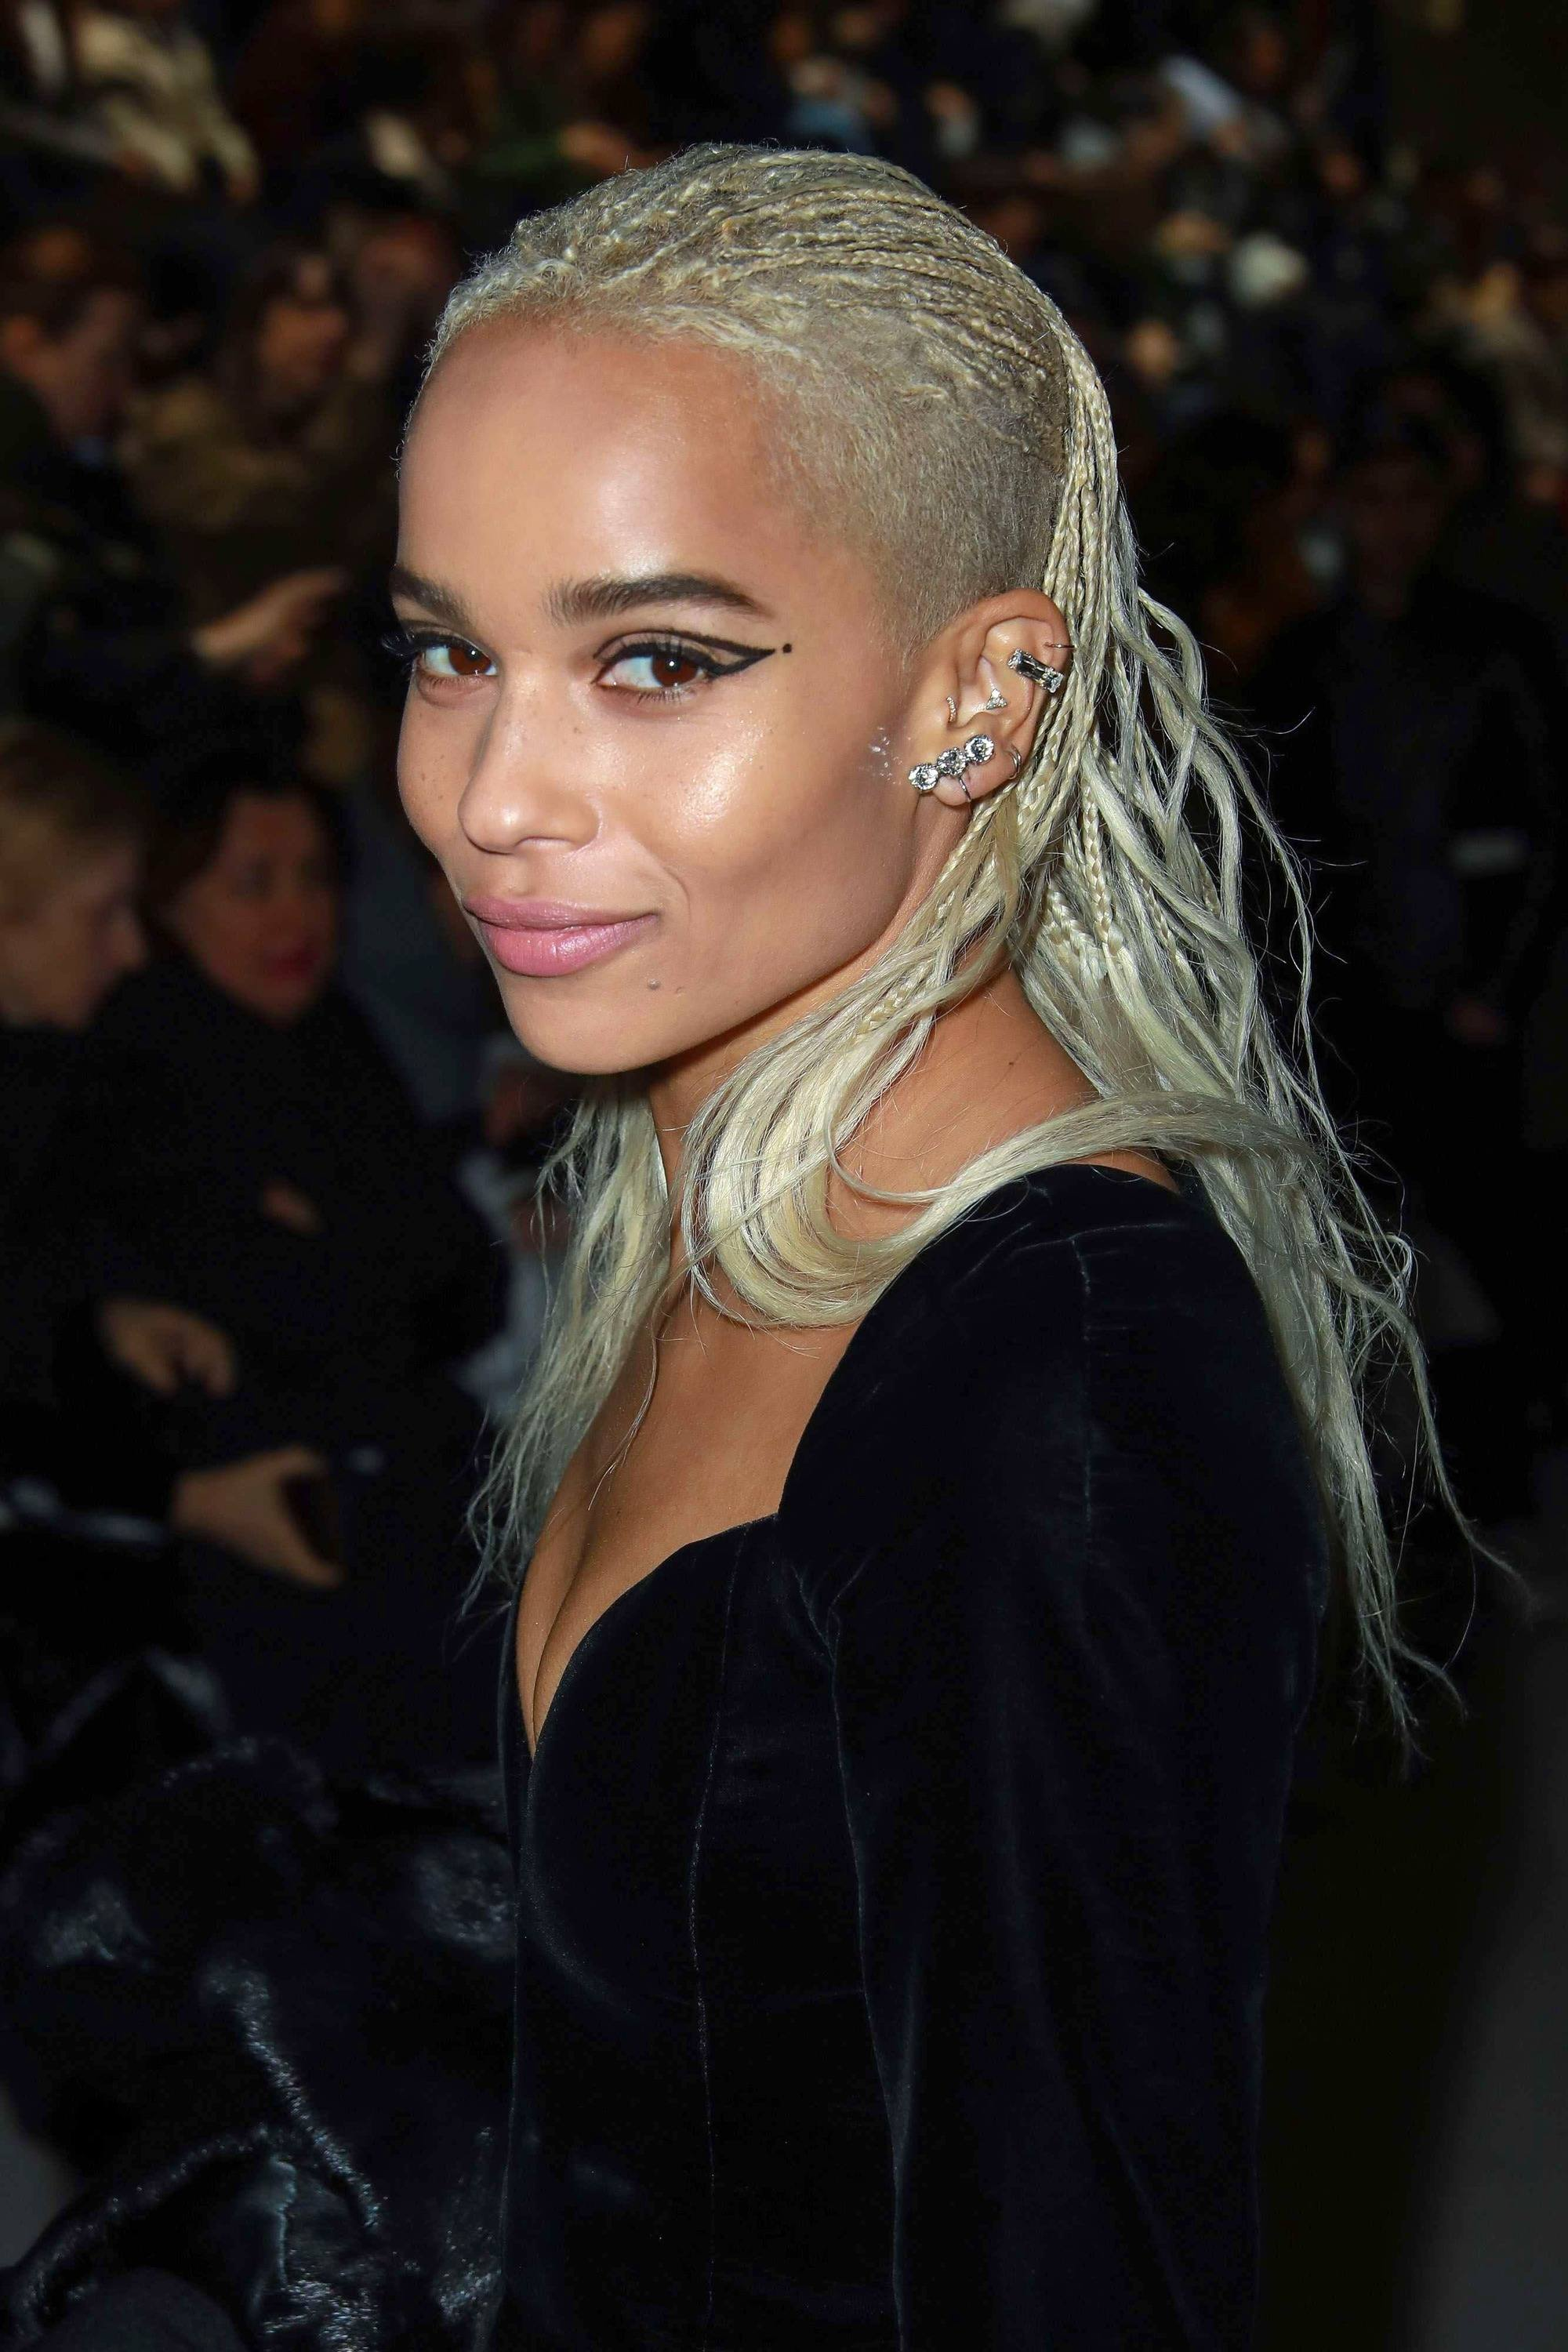 Zoe Kravitz Has Been Experimenting With Her Undercut Hair